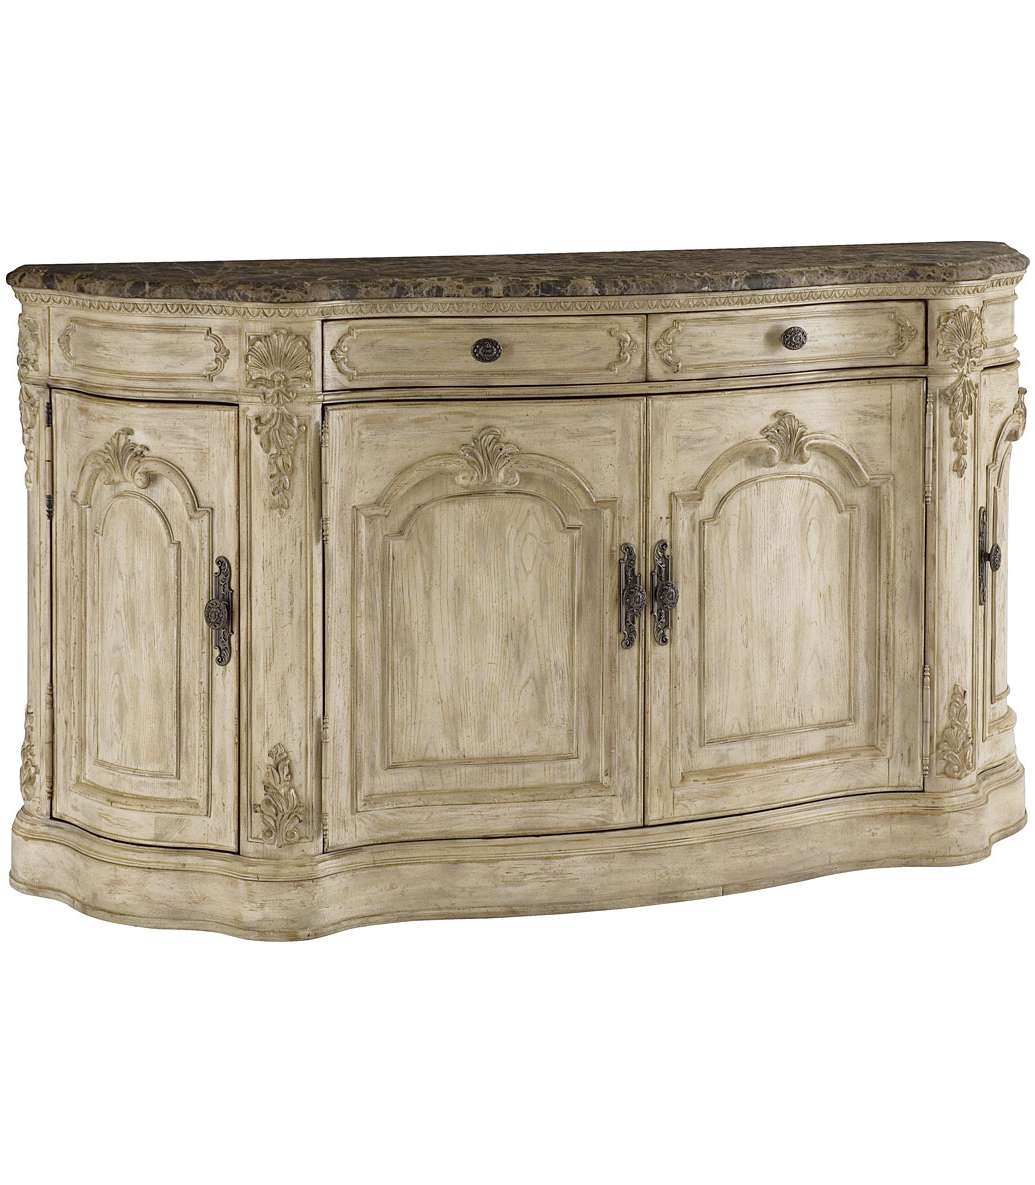 Antique French Country Dinette Decor With Adjustable Shelf Buffet Inside Sideboards With Marble Tops (View 2 of 20)